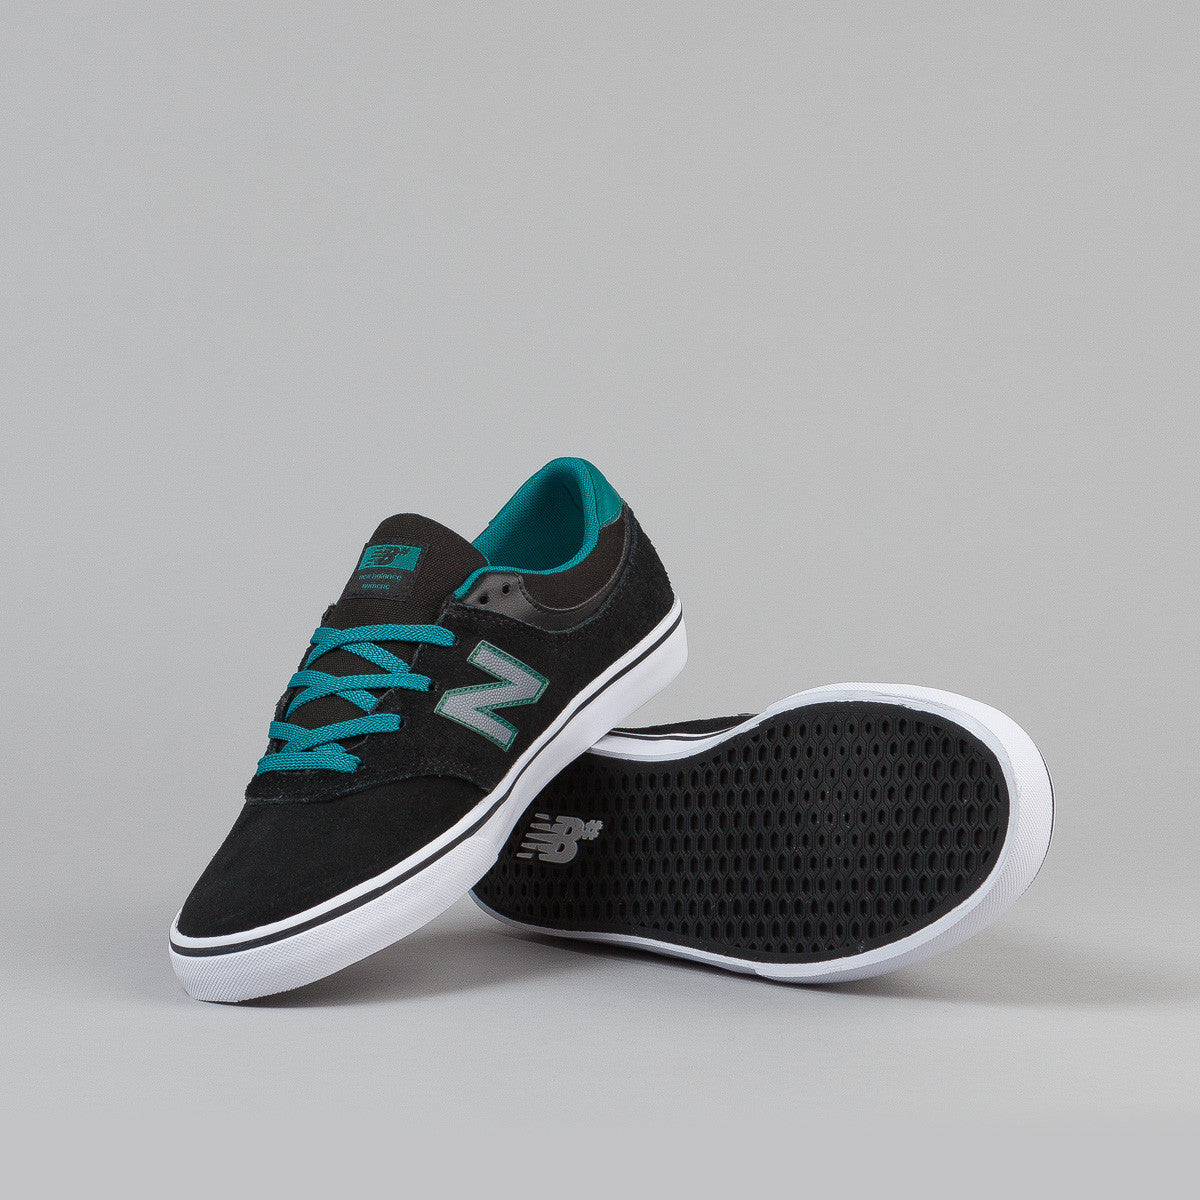 New Balance Numeric Quincy 254 Shoes - Black / Jade